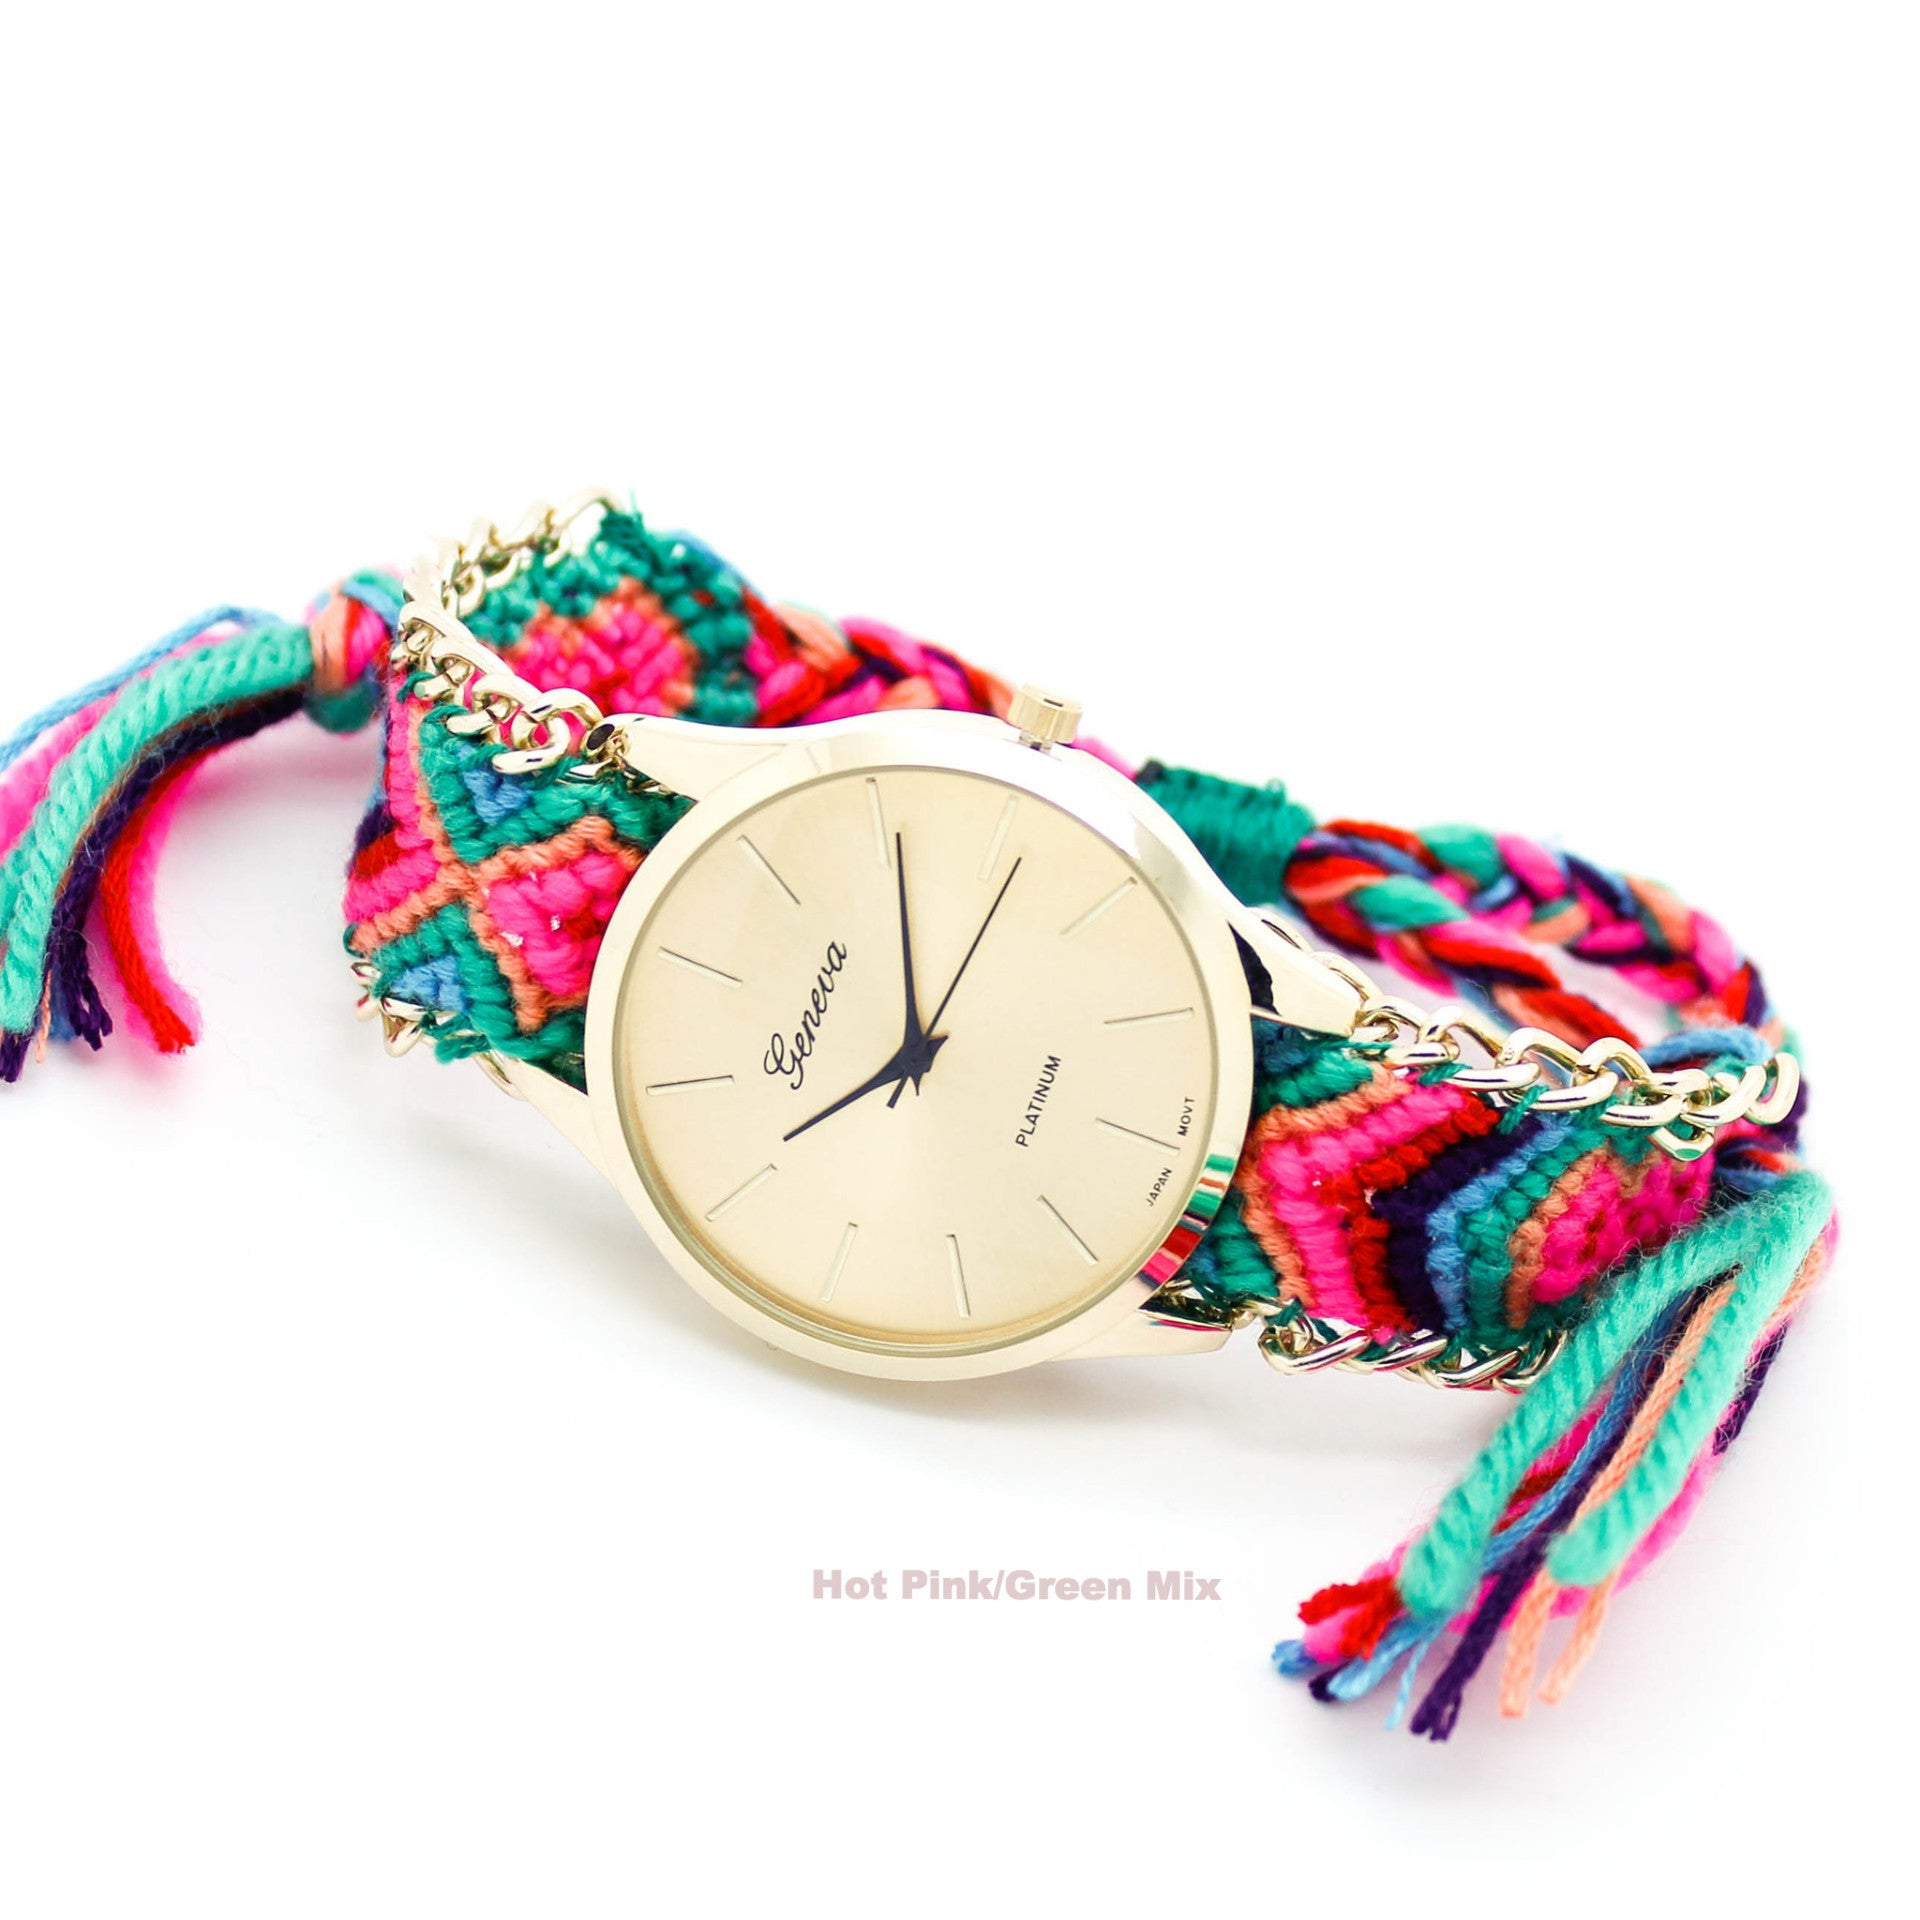 friendship bracelet watch 3 colors imsmistyle. Black Bedroom Furniture Sets. Home Design Ideas